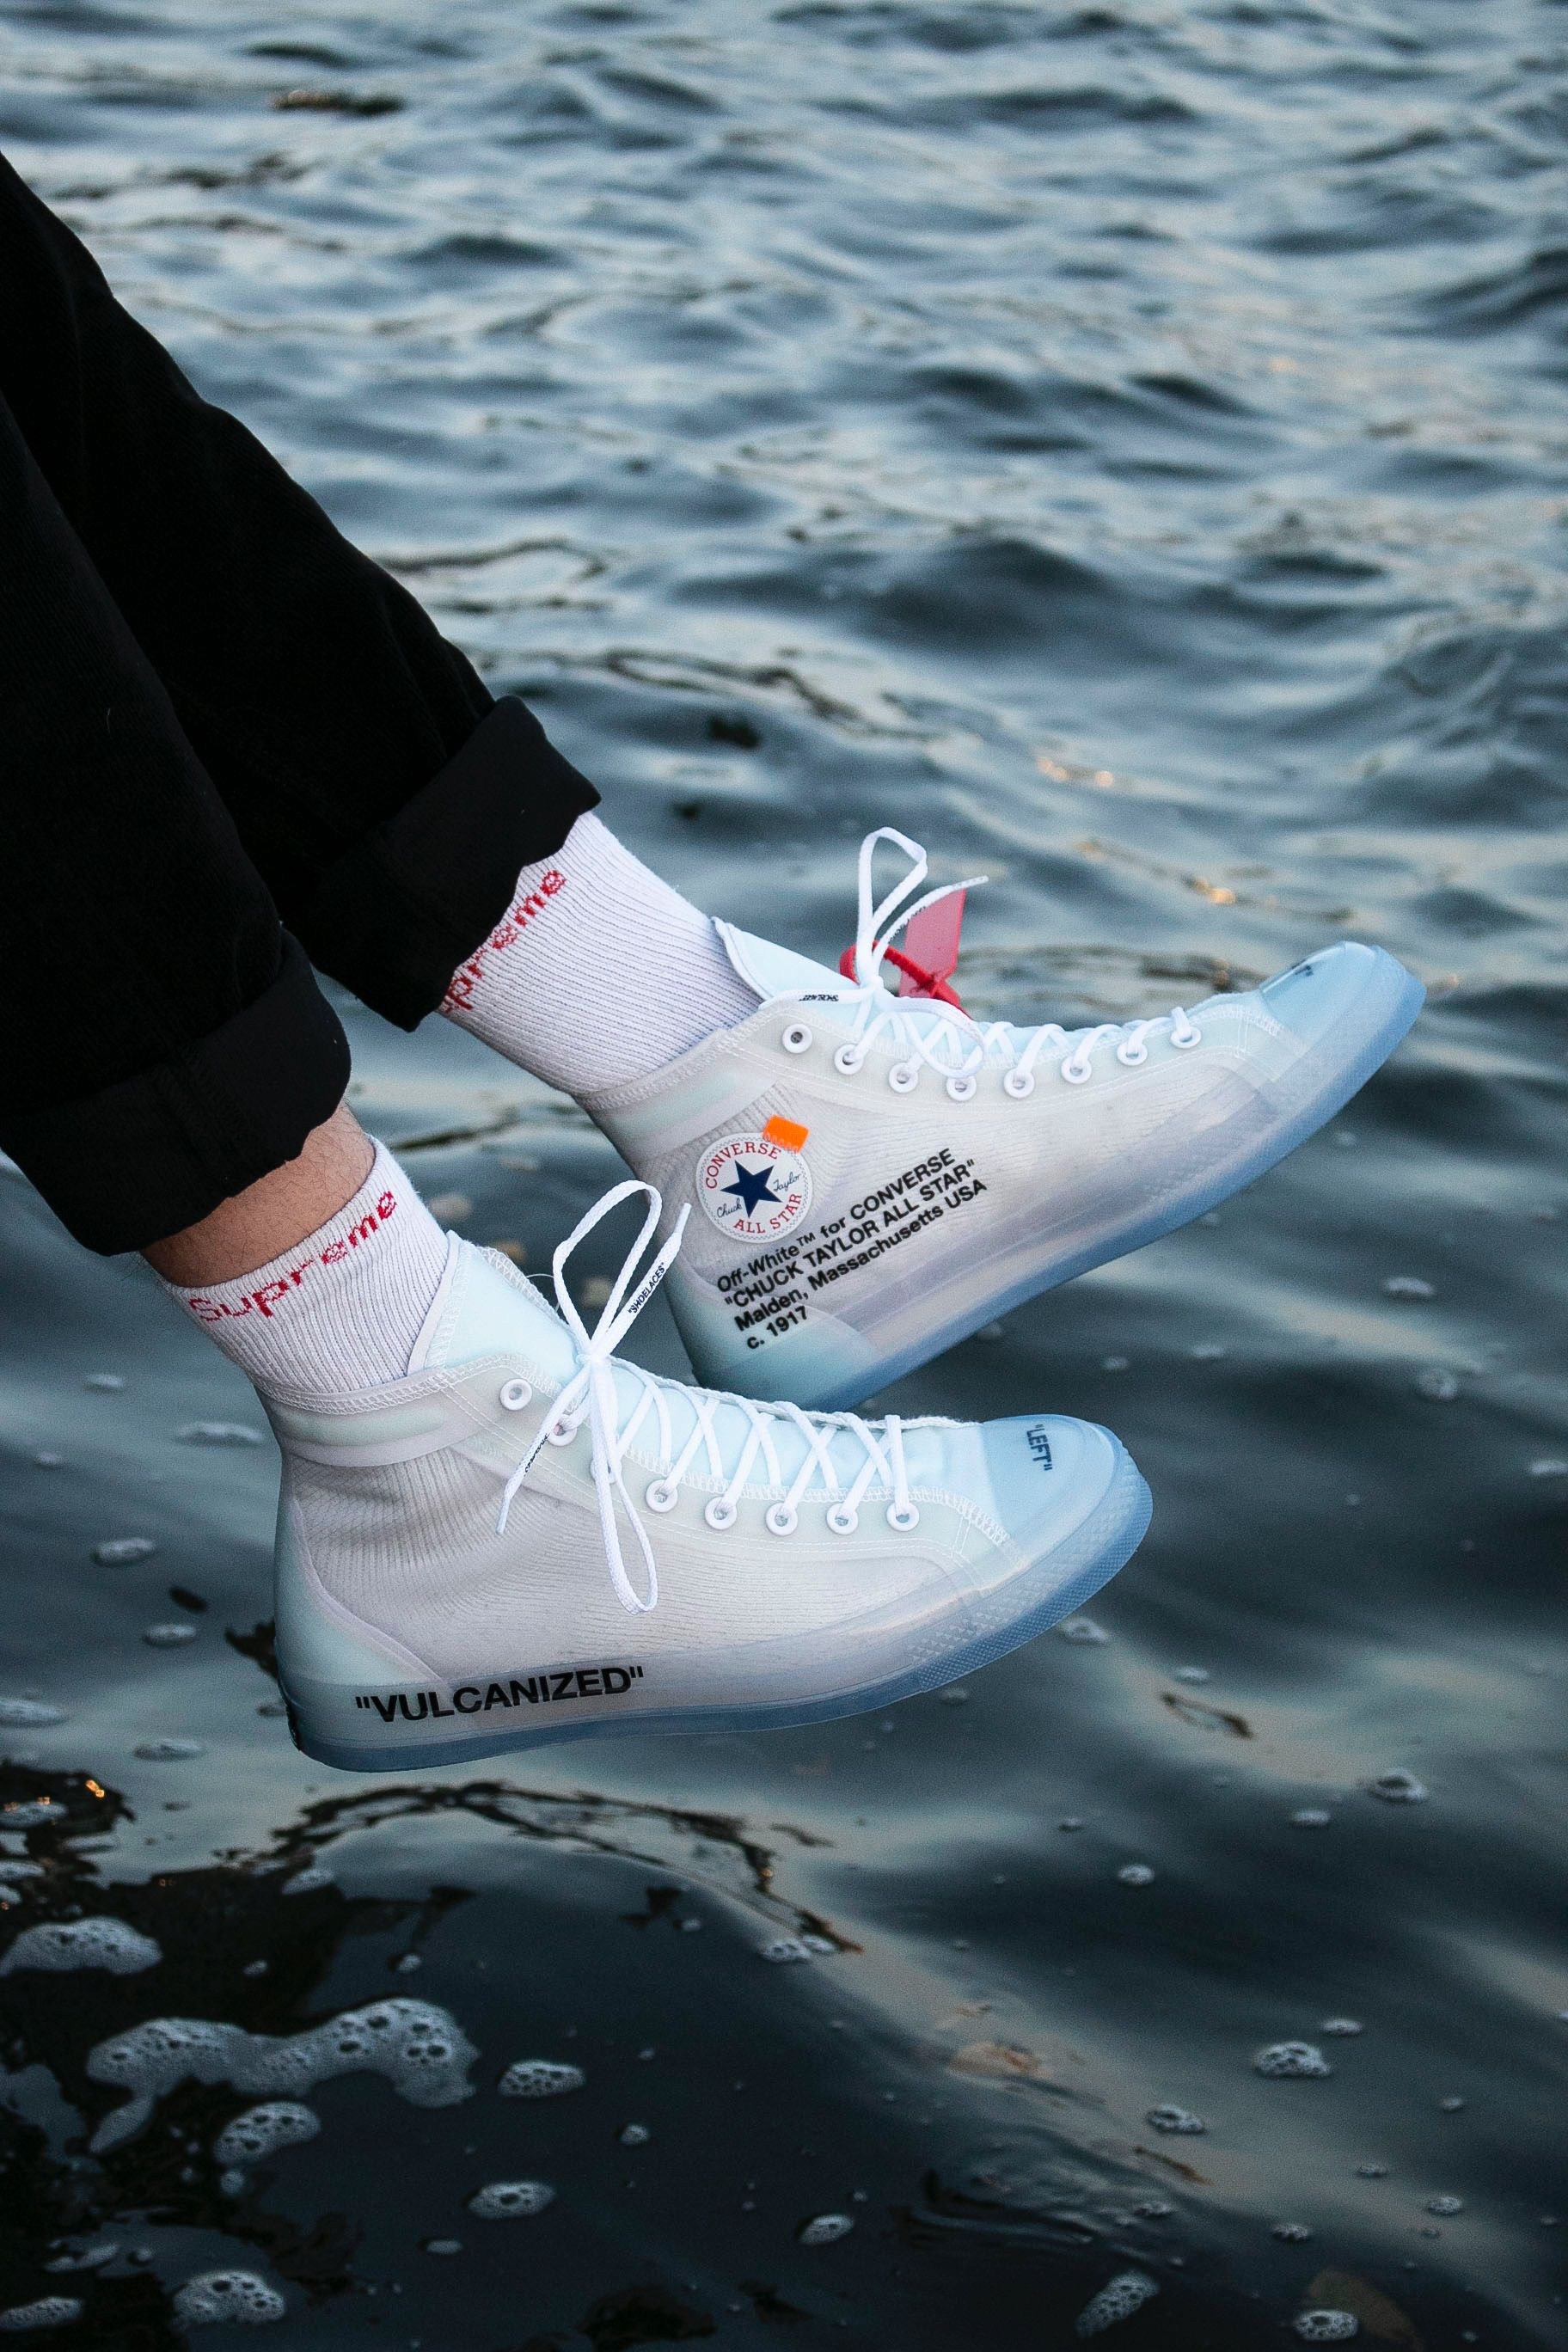 OG Off White x Converse Chuck Taylor on feet